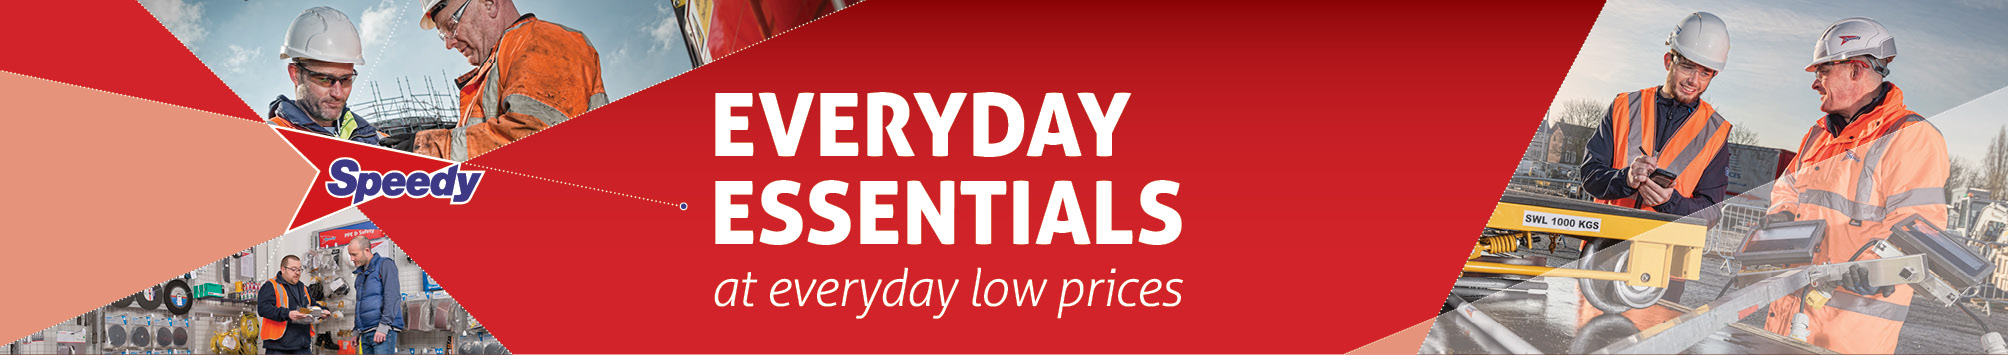 Everyday Essentials Landing Page Header2.jpg